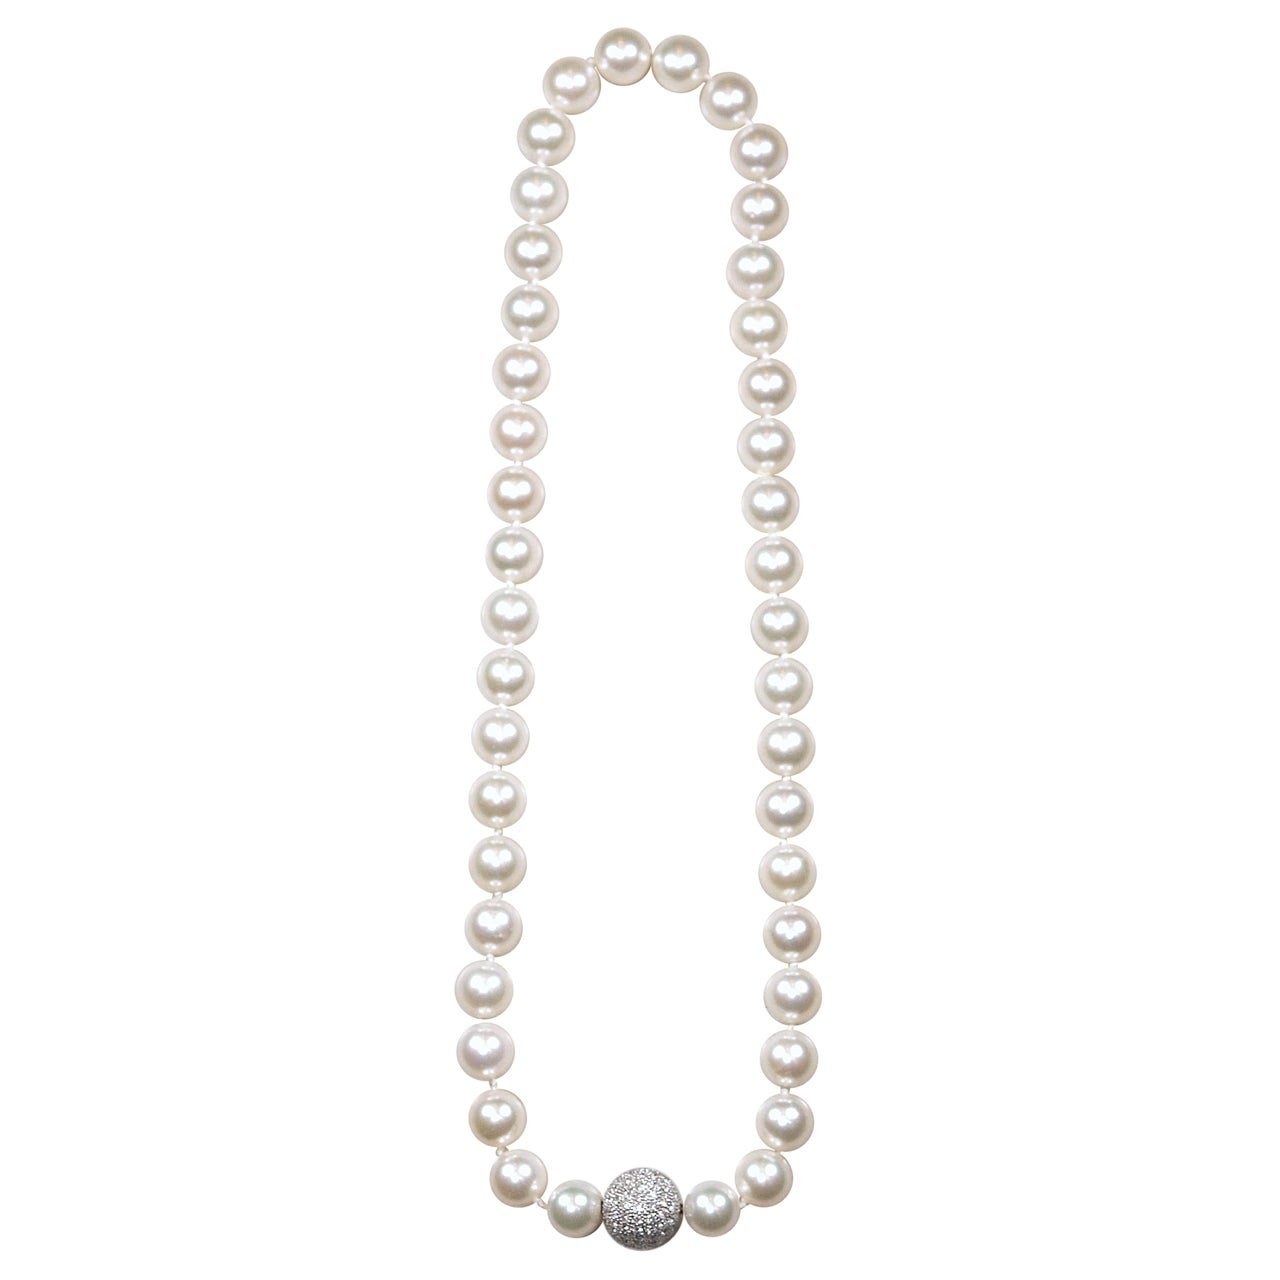 Classic Strand Pearl Necklace with Diamond Ball Clasp For Sale